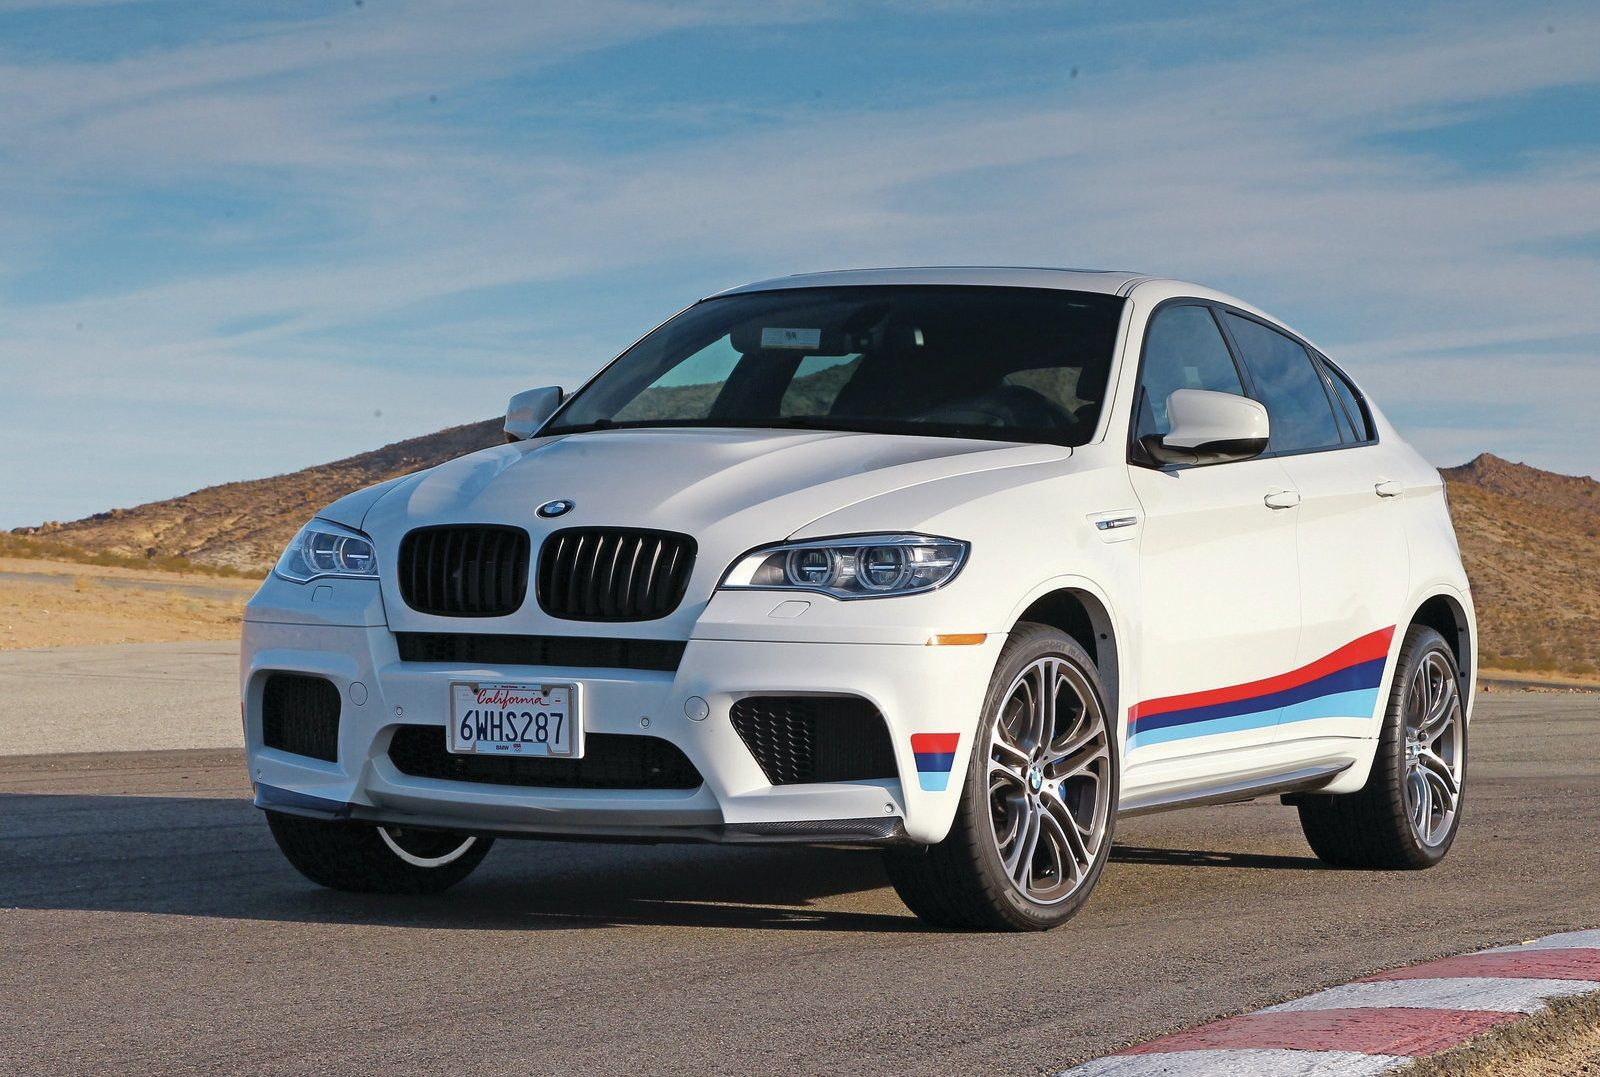 Top 10 Most Expensive SUVs on the Market in 2014 - TheRichest